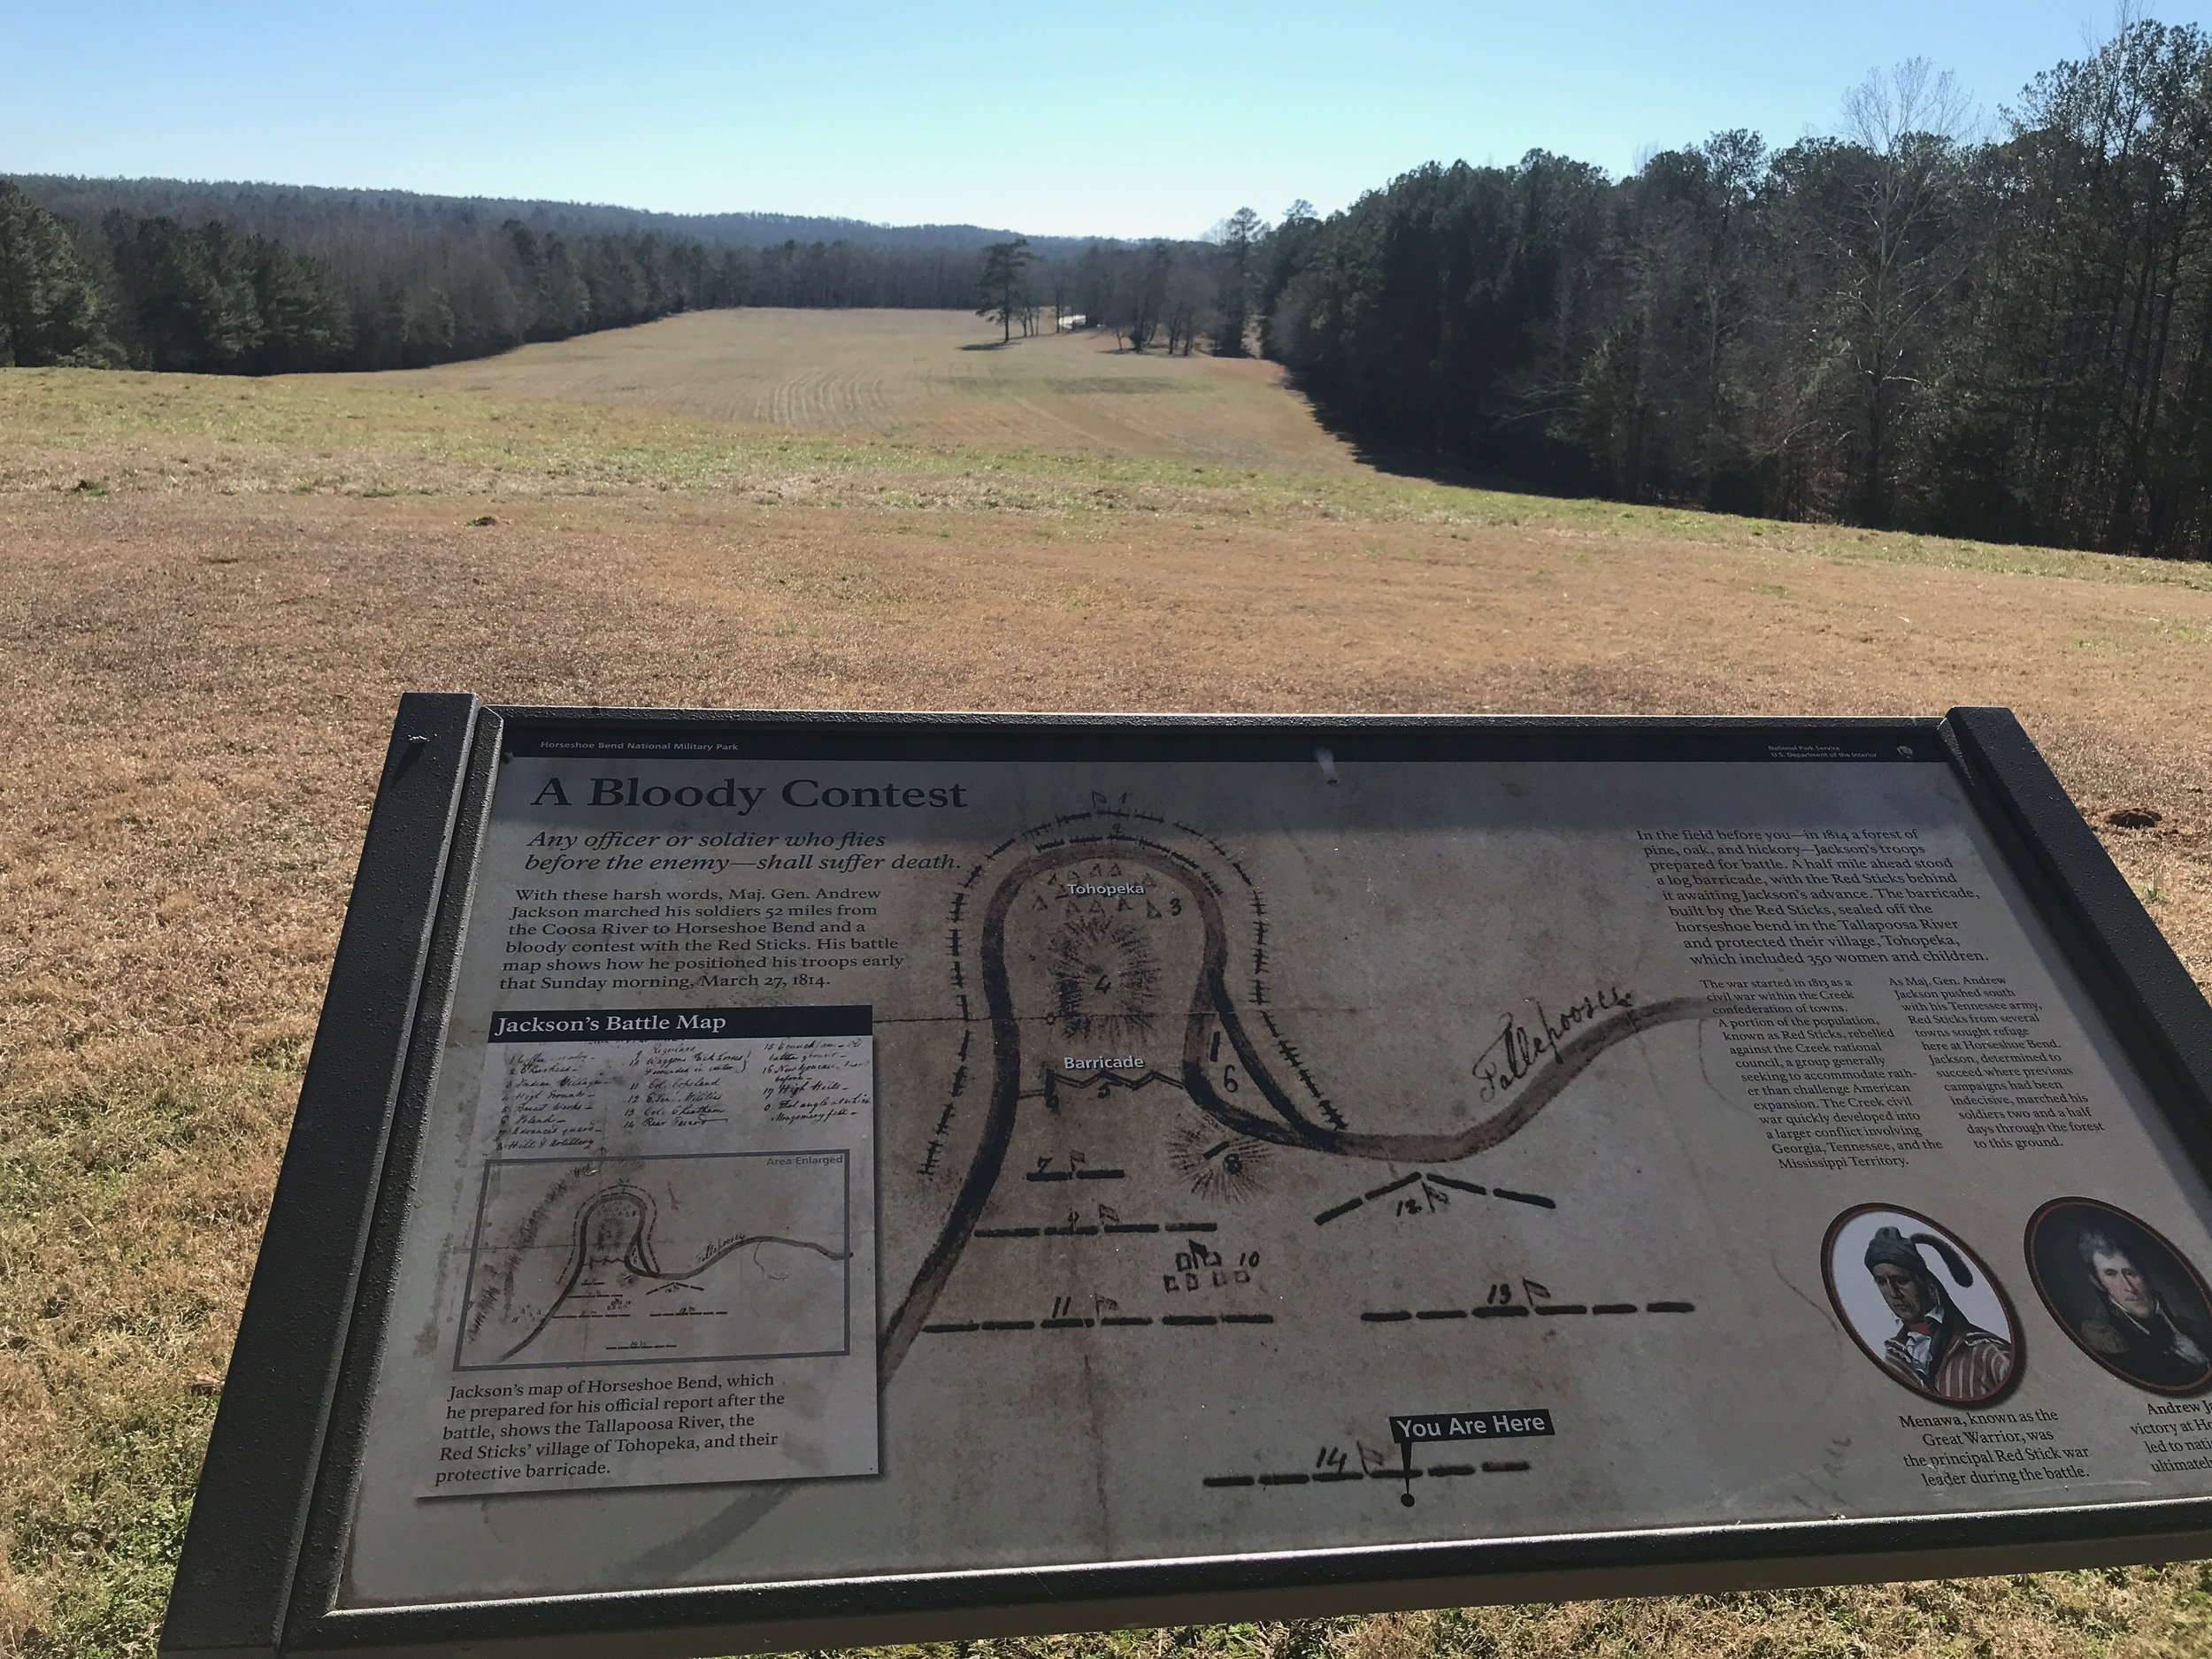 Andrew Jackson's troops marched down this hill in their assault on a fortified Indian village at Horseshoe Bend, the climactic battle of the Creek War.